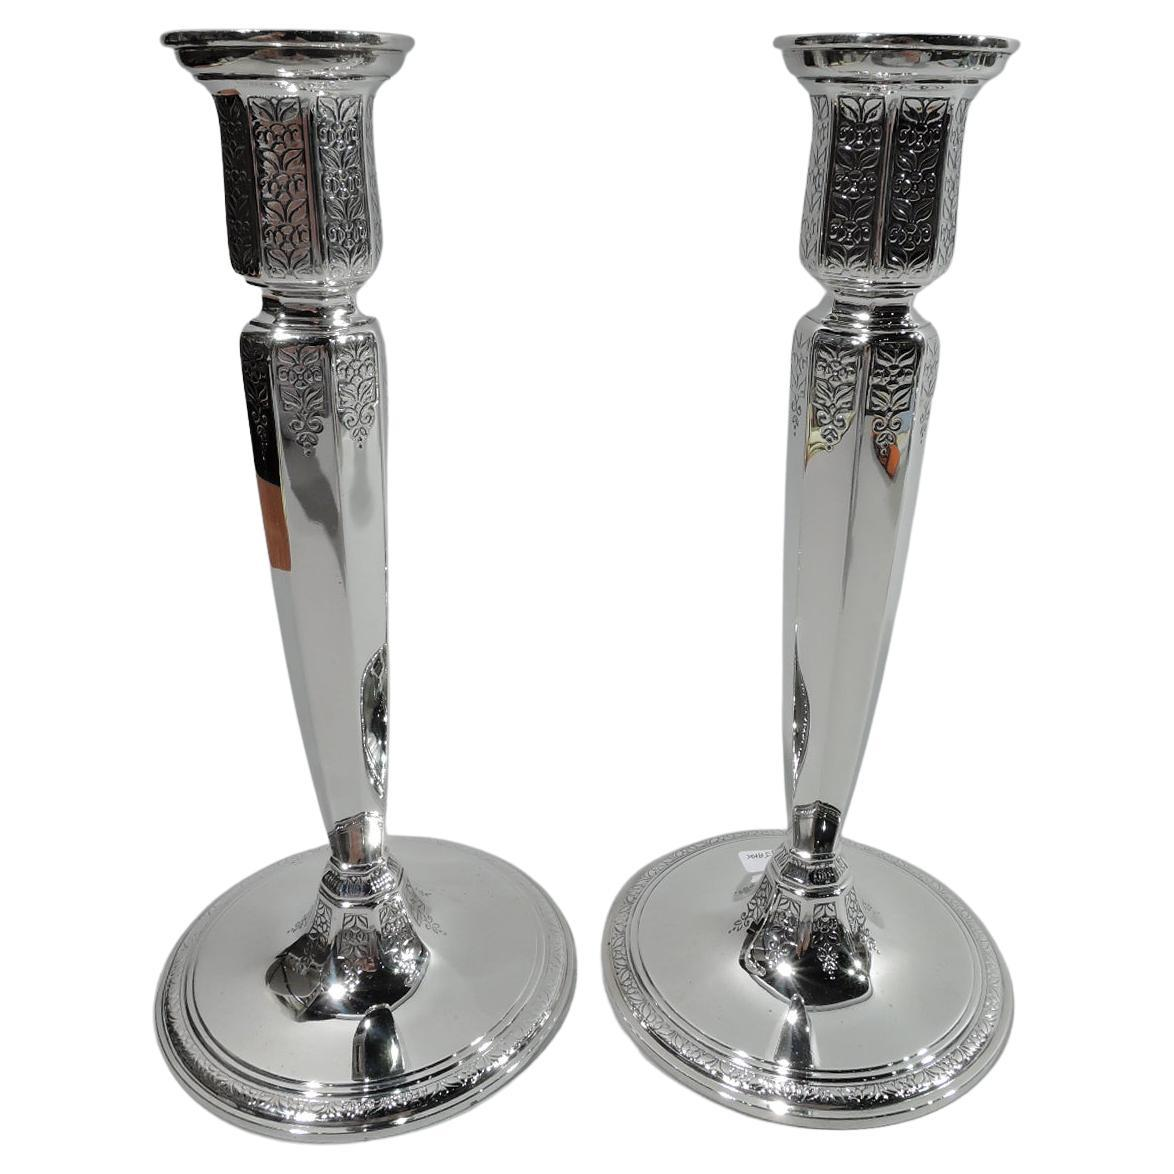 Pair of Antique Tiffany Art Deco Sterling Silver Candlesticks